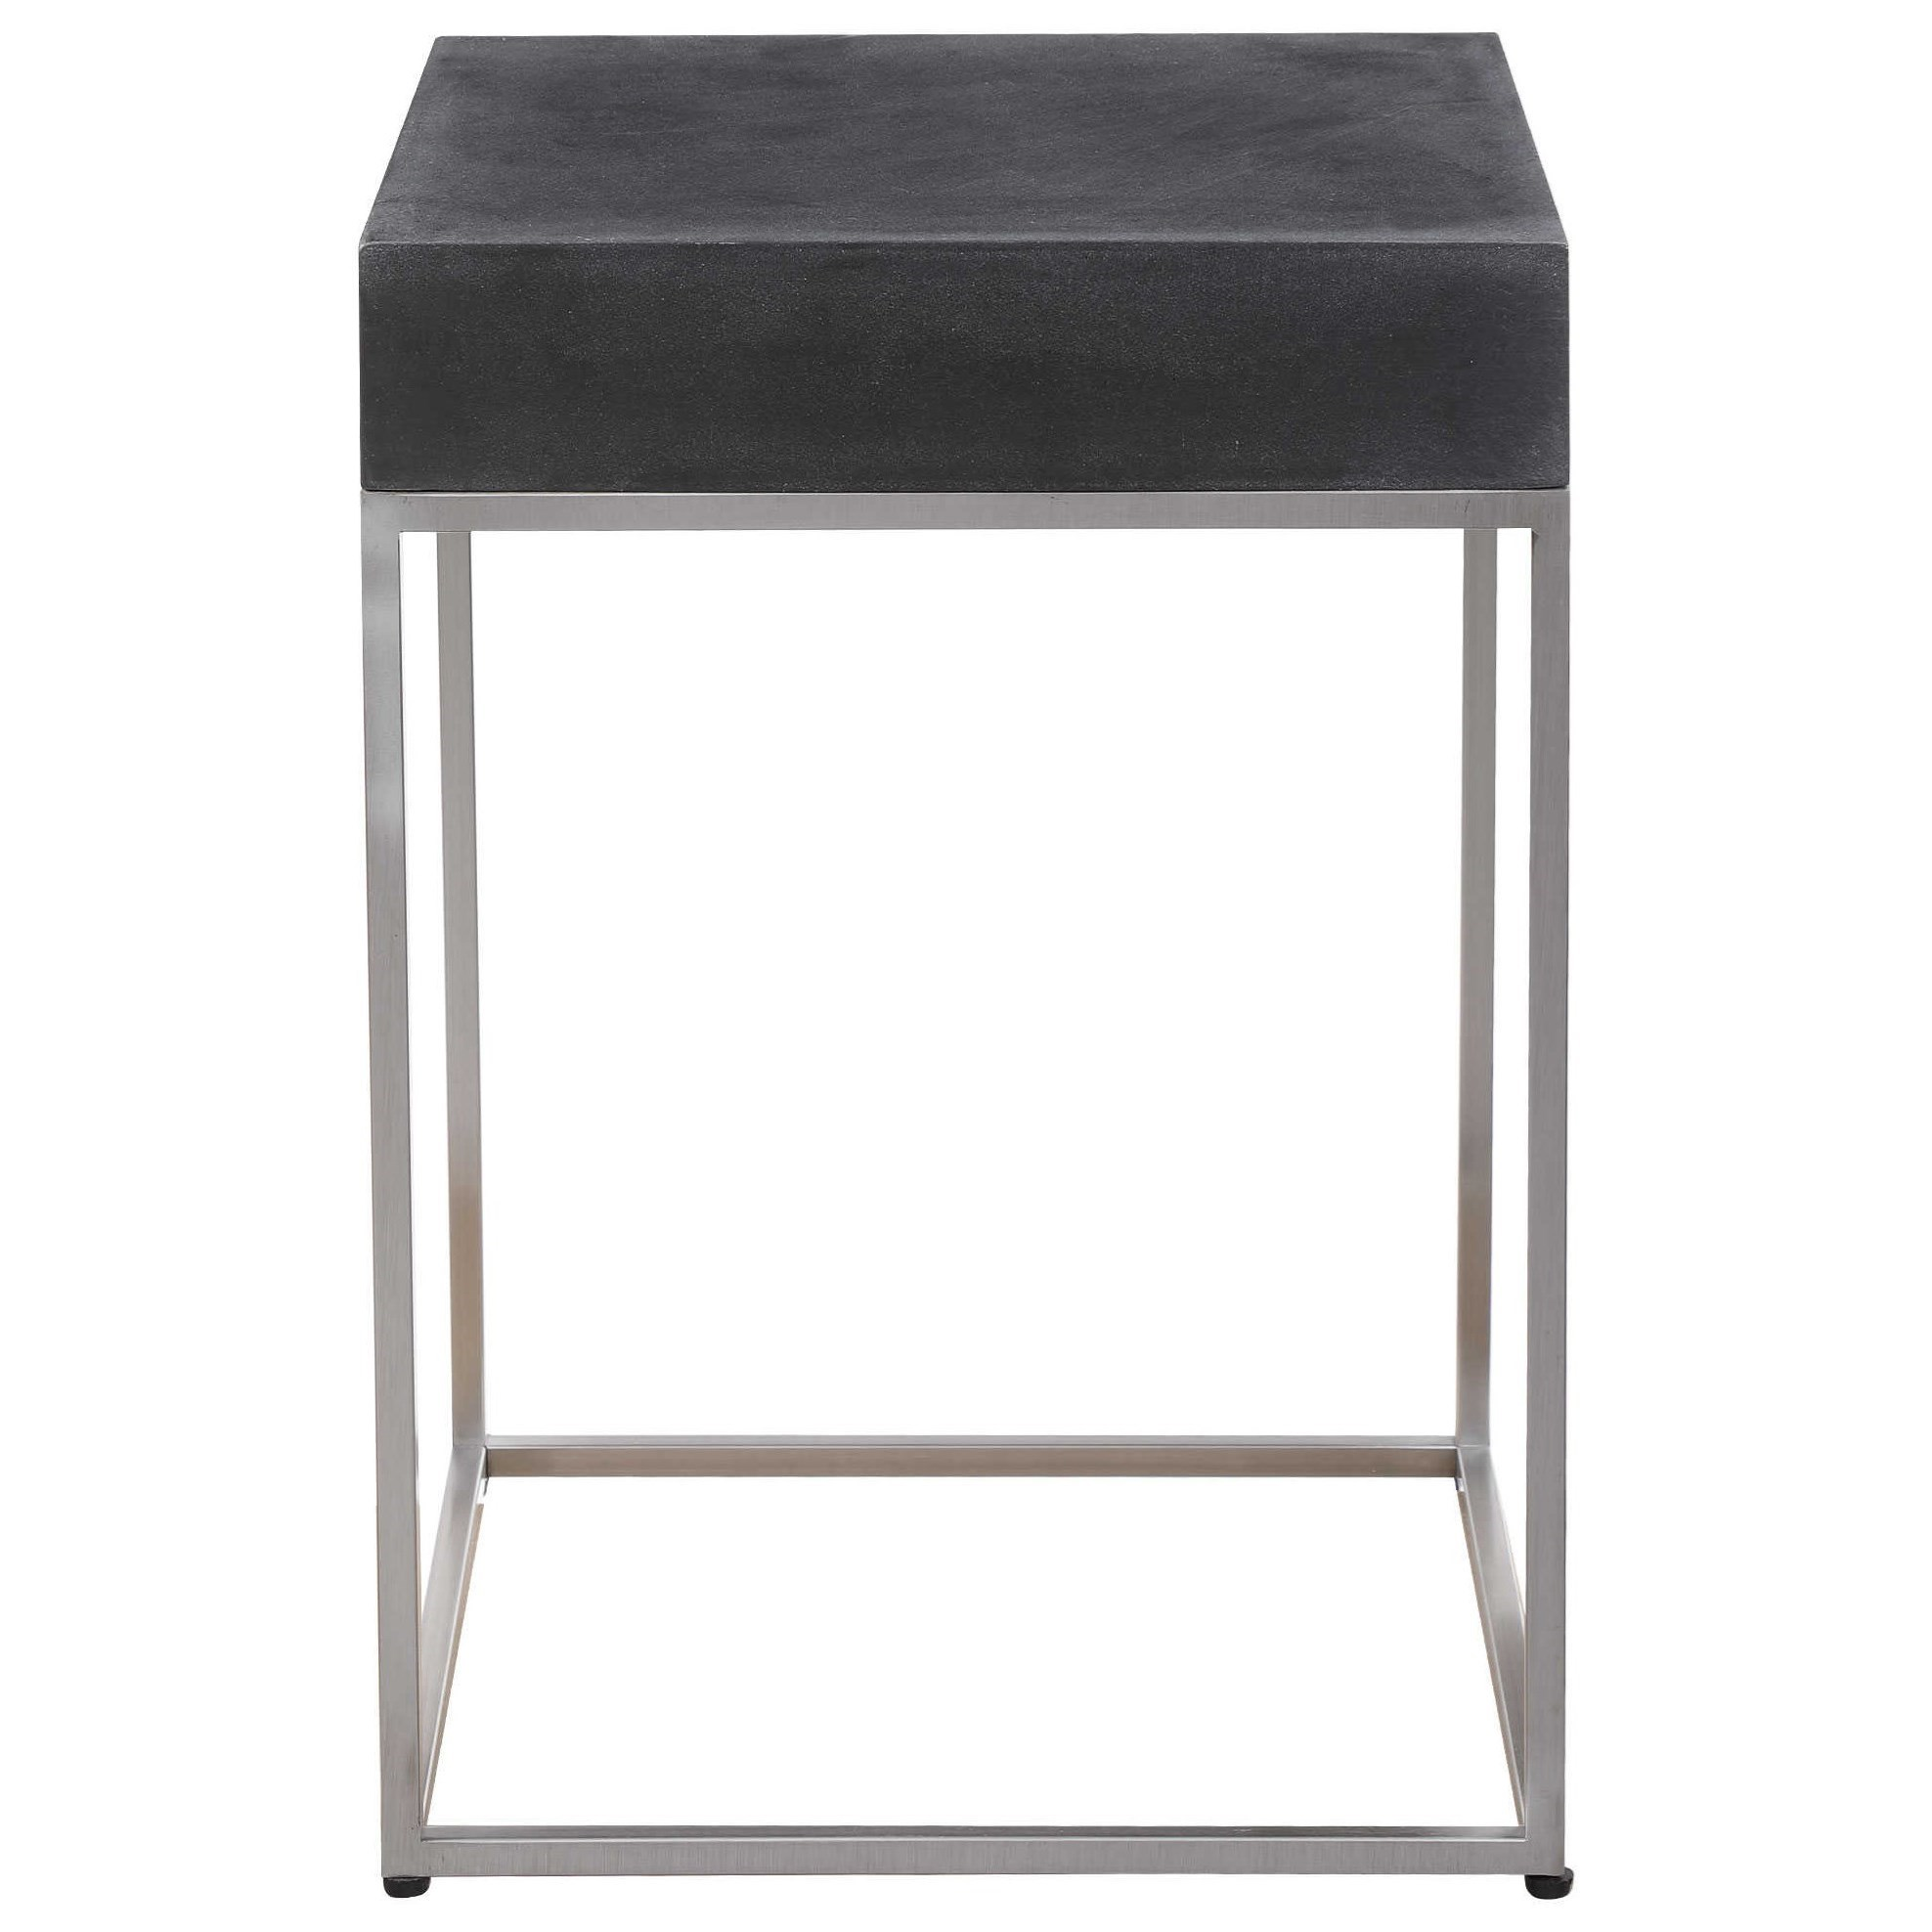 Accent Furniture - Occasional Tables Black Concrete Accent Table by Uttermost at Dunk & Bright Furniture